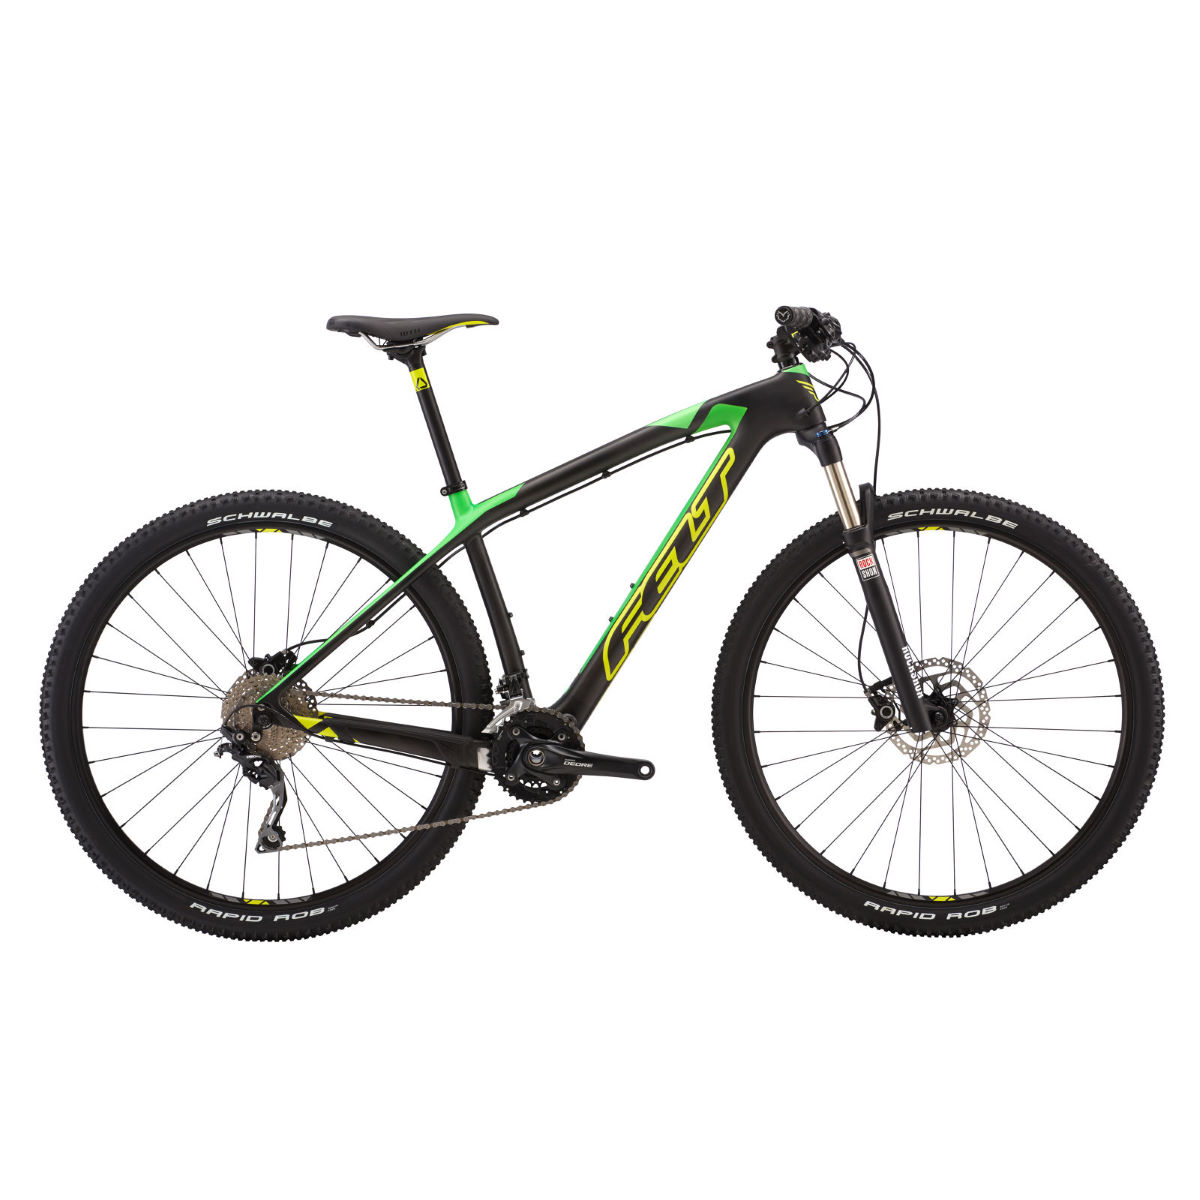 VTT Felt Nine 5 (2016) - 22'' Carbon/Green VTT semi-rigides